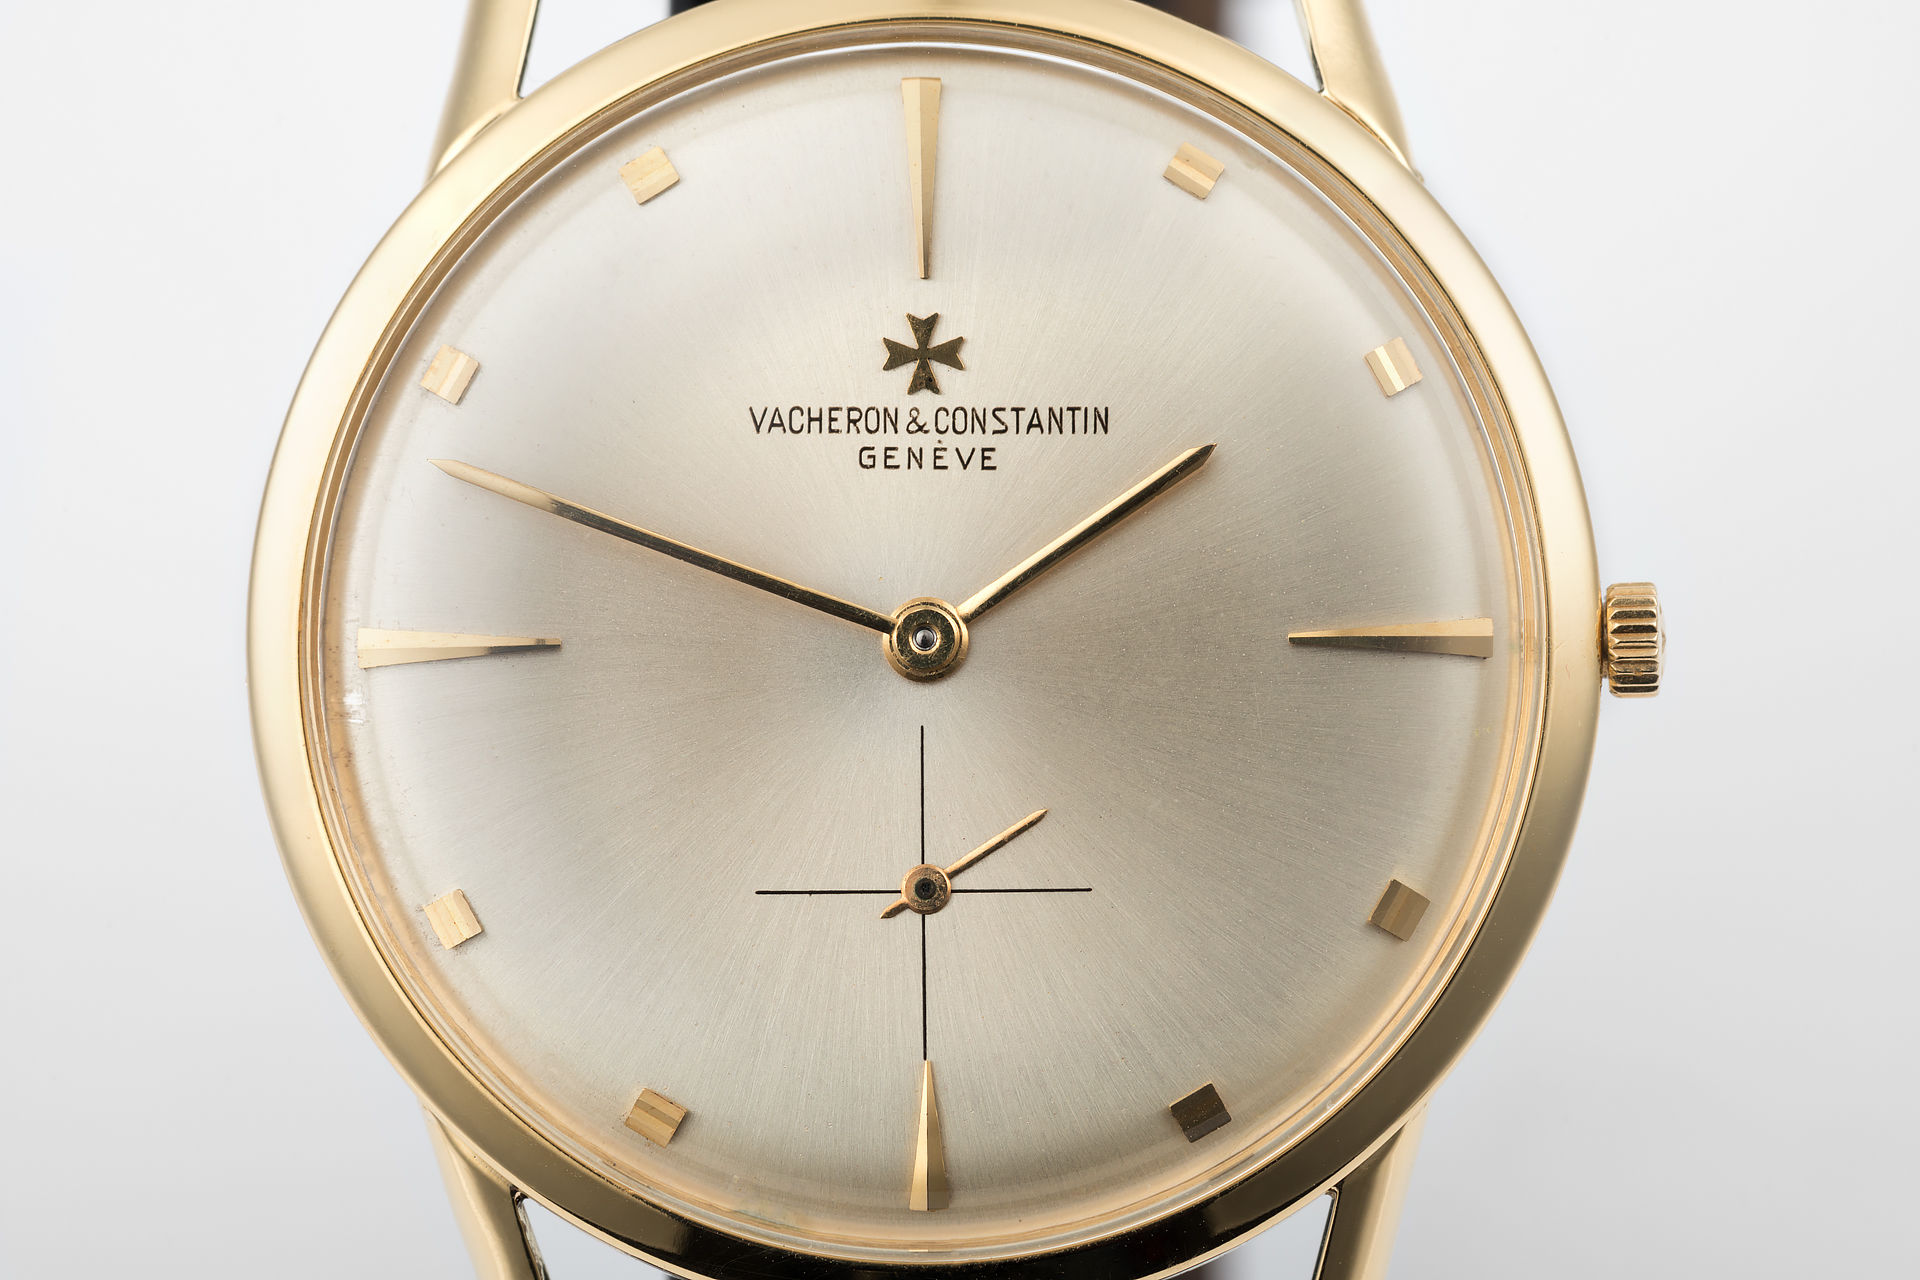 ref 6456 | 'Silver Soleil Dial' | Vacheron Constantin Dress Watch